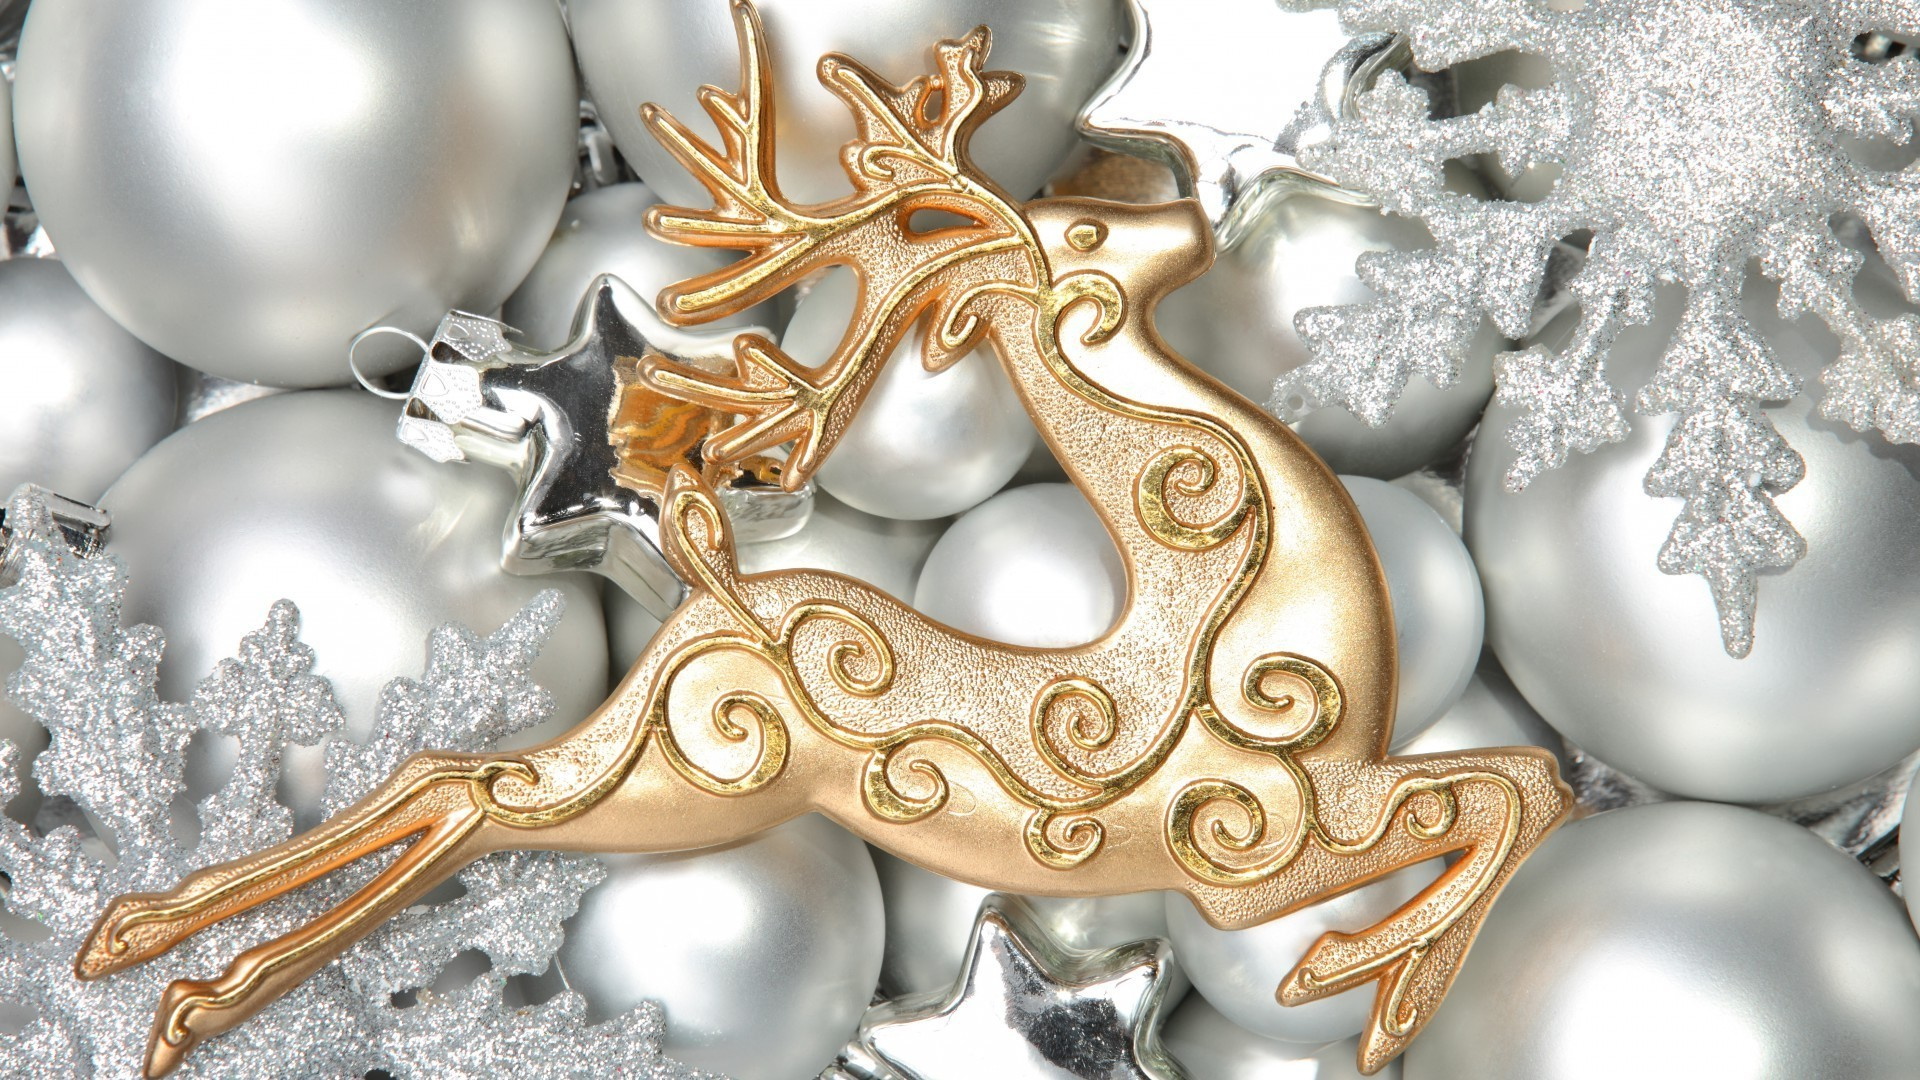 new year decoration gold christmas luxury shining celebration gift traditional glisten desktop ornate winter